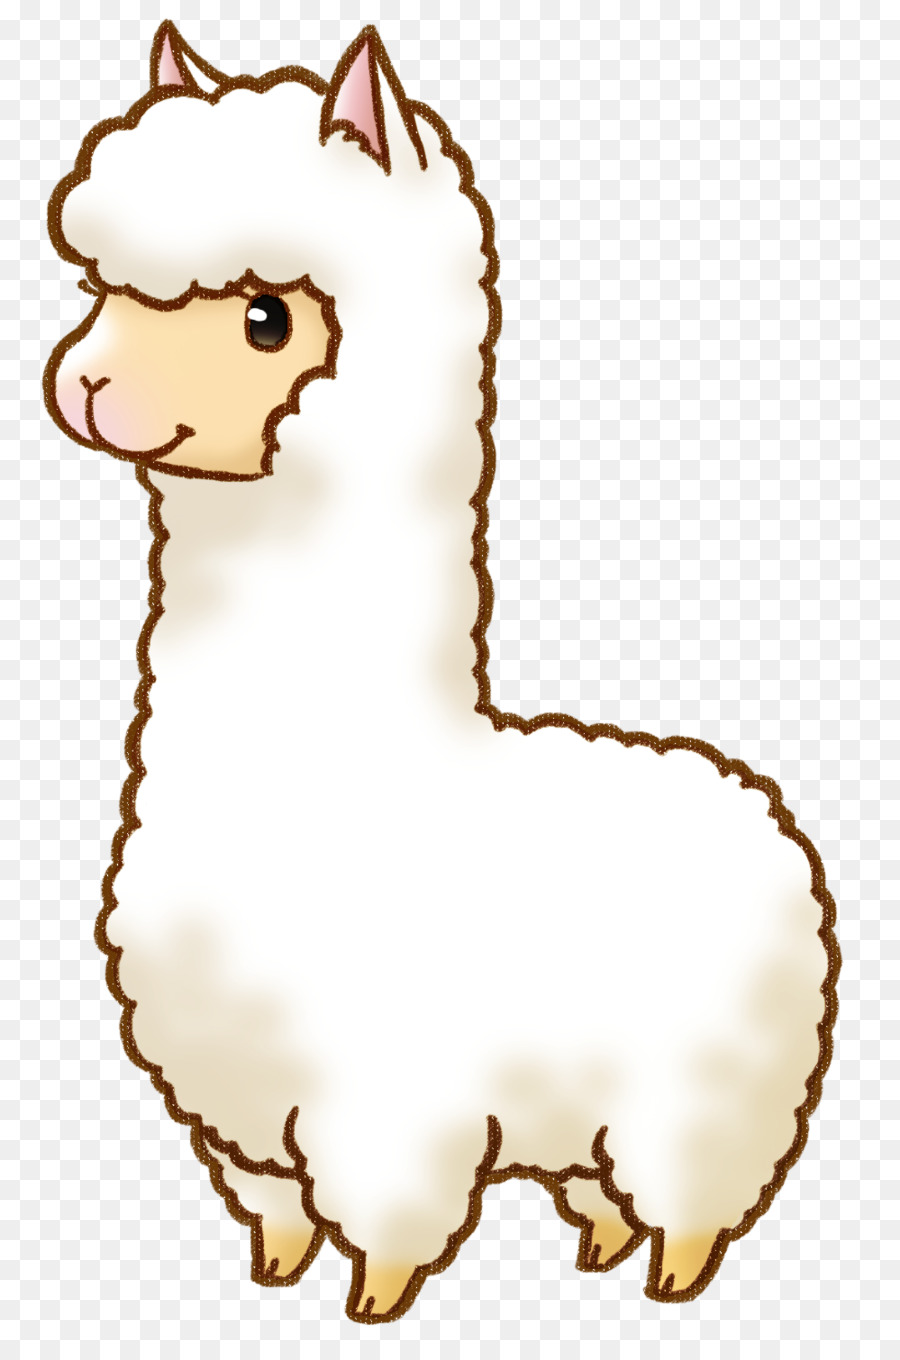 clip art royalty free download Free download on webstockreview. Alpaca clipart